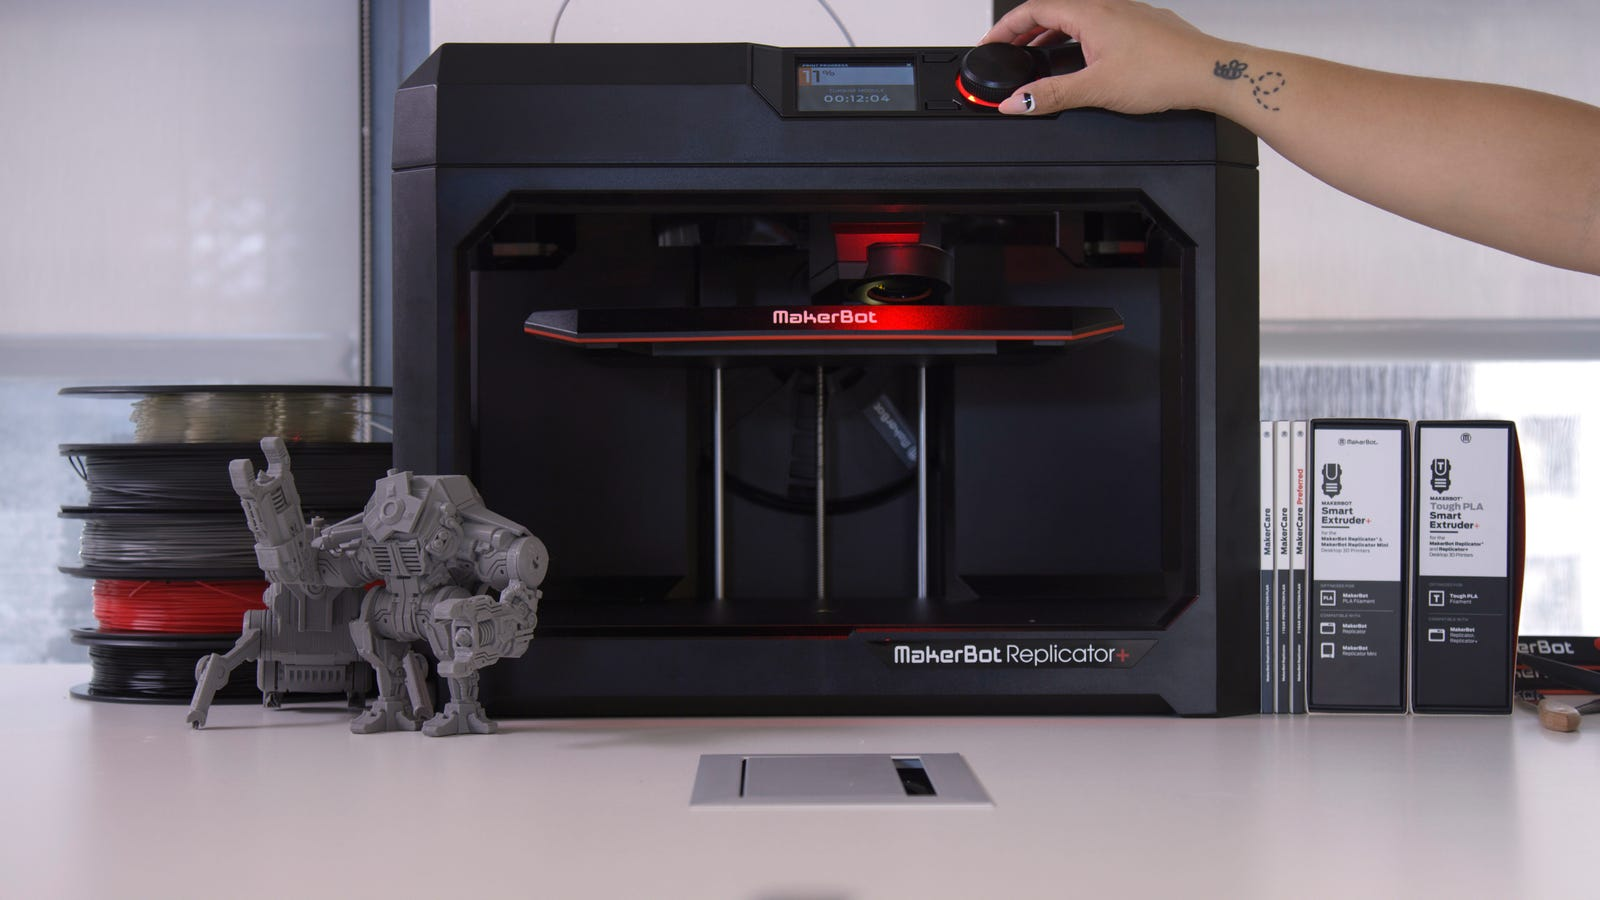 Home 3D Printing 'Just Not There Yet' Admits MakerBot